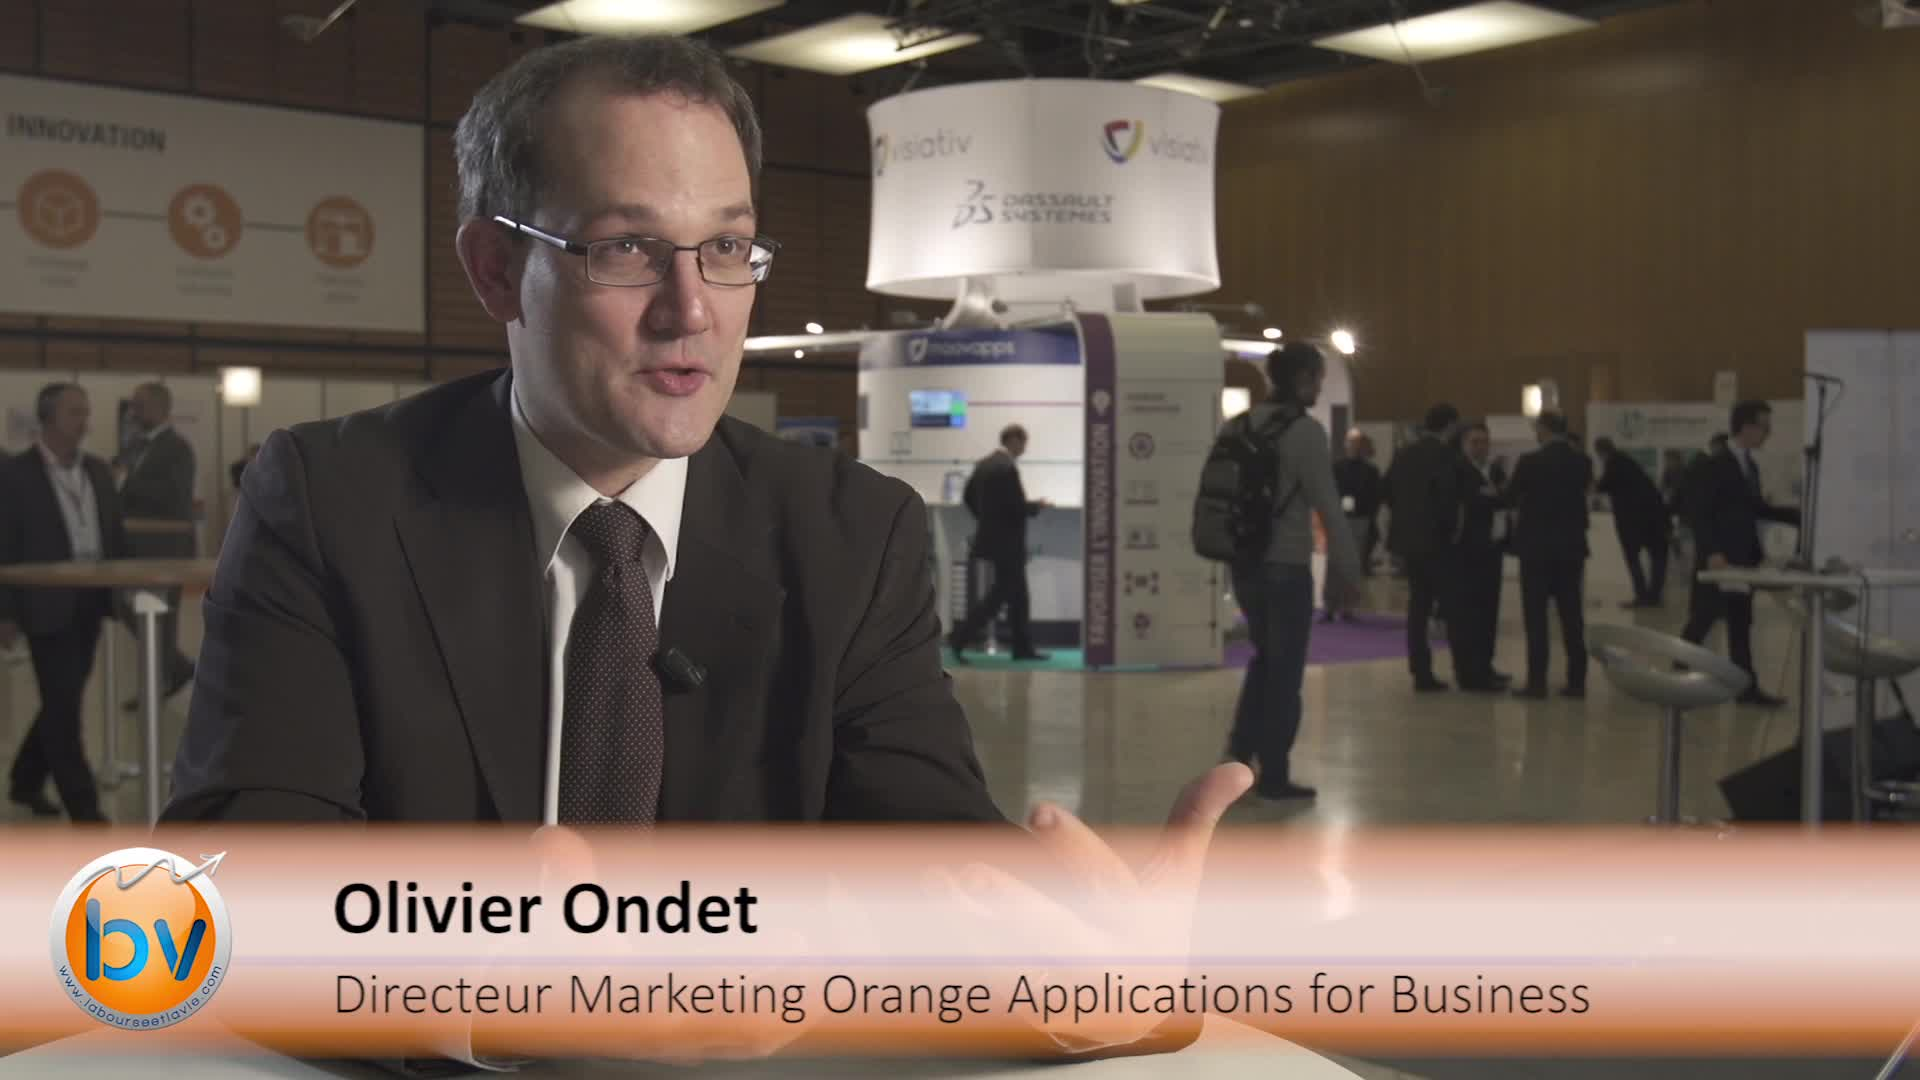 Olivier Ondet Directeur Marketing Orange Applications for Business : « Une nouvelle rupture autour de l'Internet des objets et de la donnée »